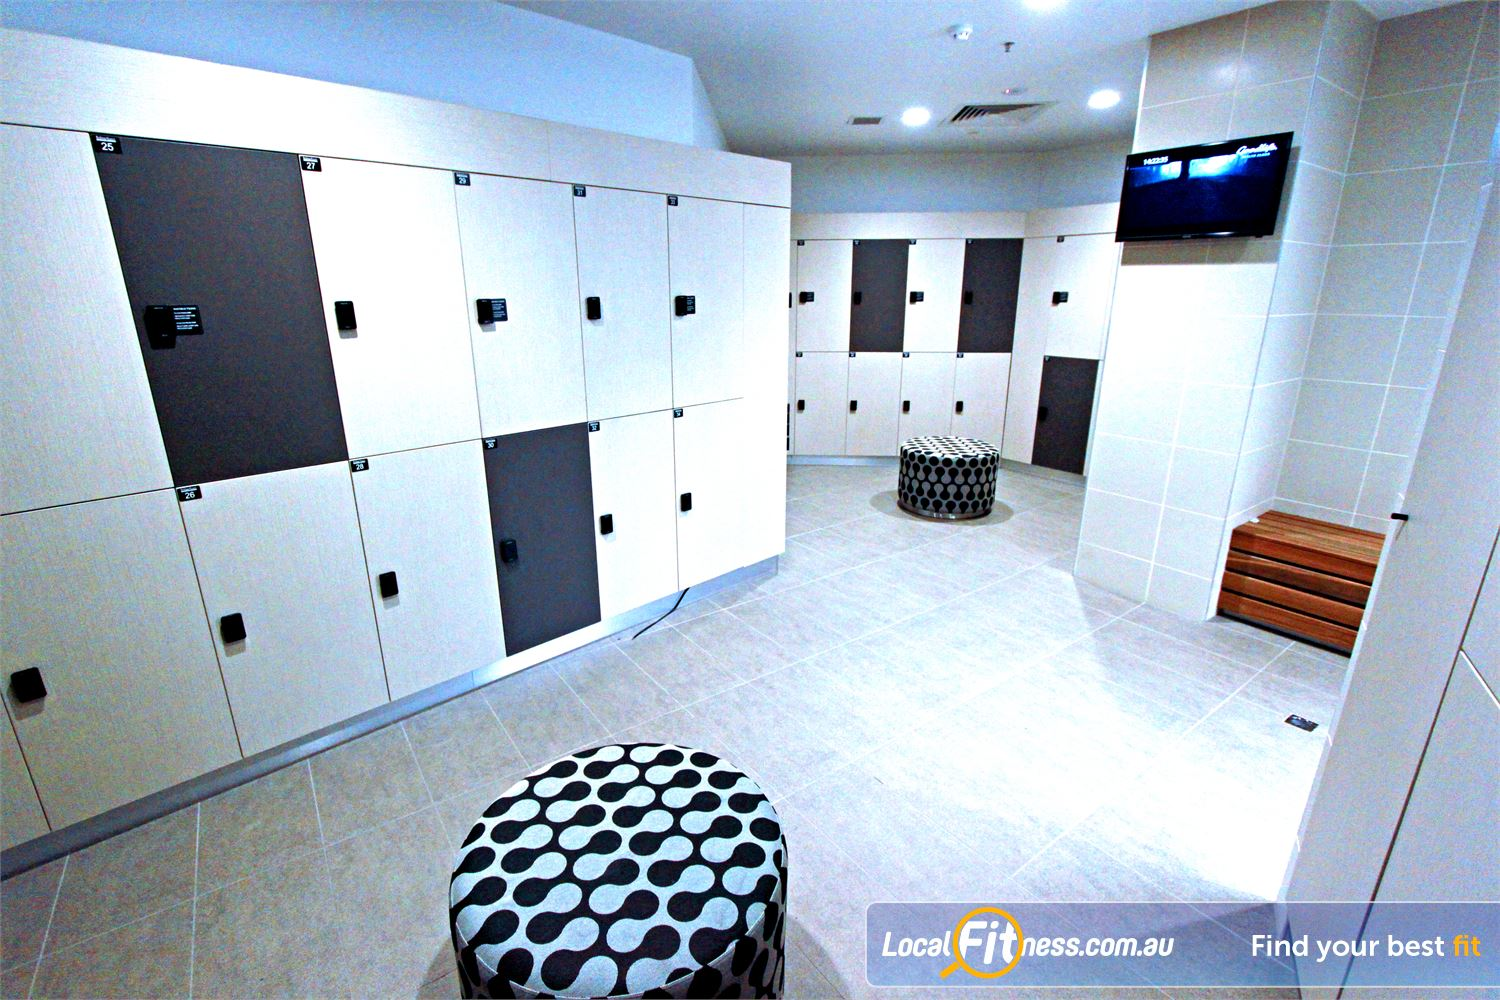 Goodlife Health Clubs Noarlunga Centre Beautiful and spacious change room facilities.